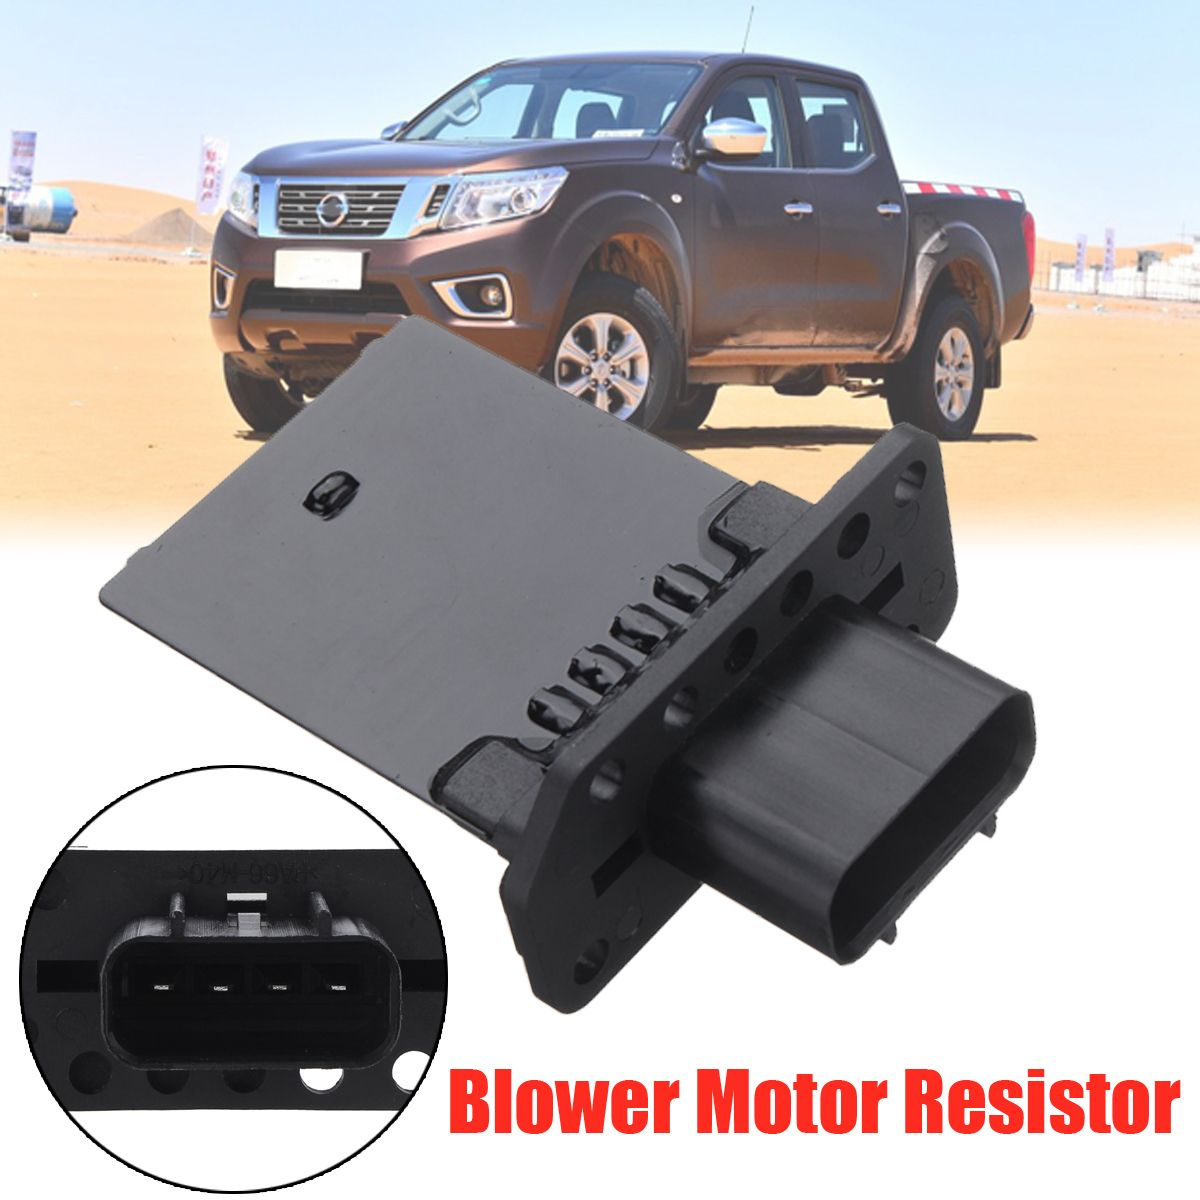 hight resolution of car blower motor heater fan resistor for nissan navara d40 pathfinder r51 05 13 sale shoppingdiscounts